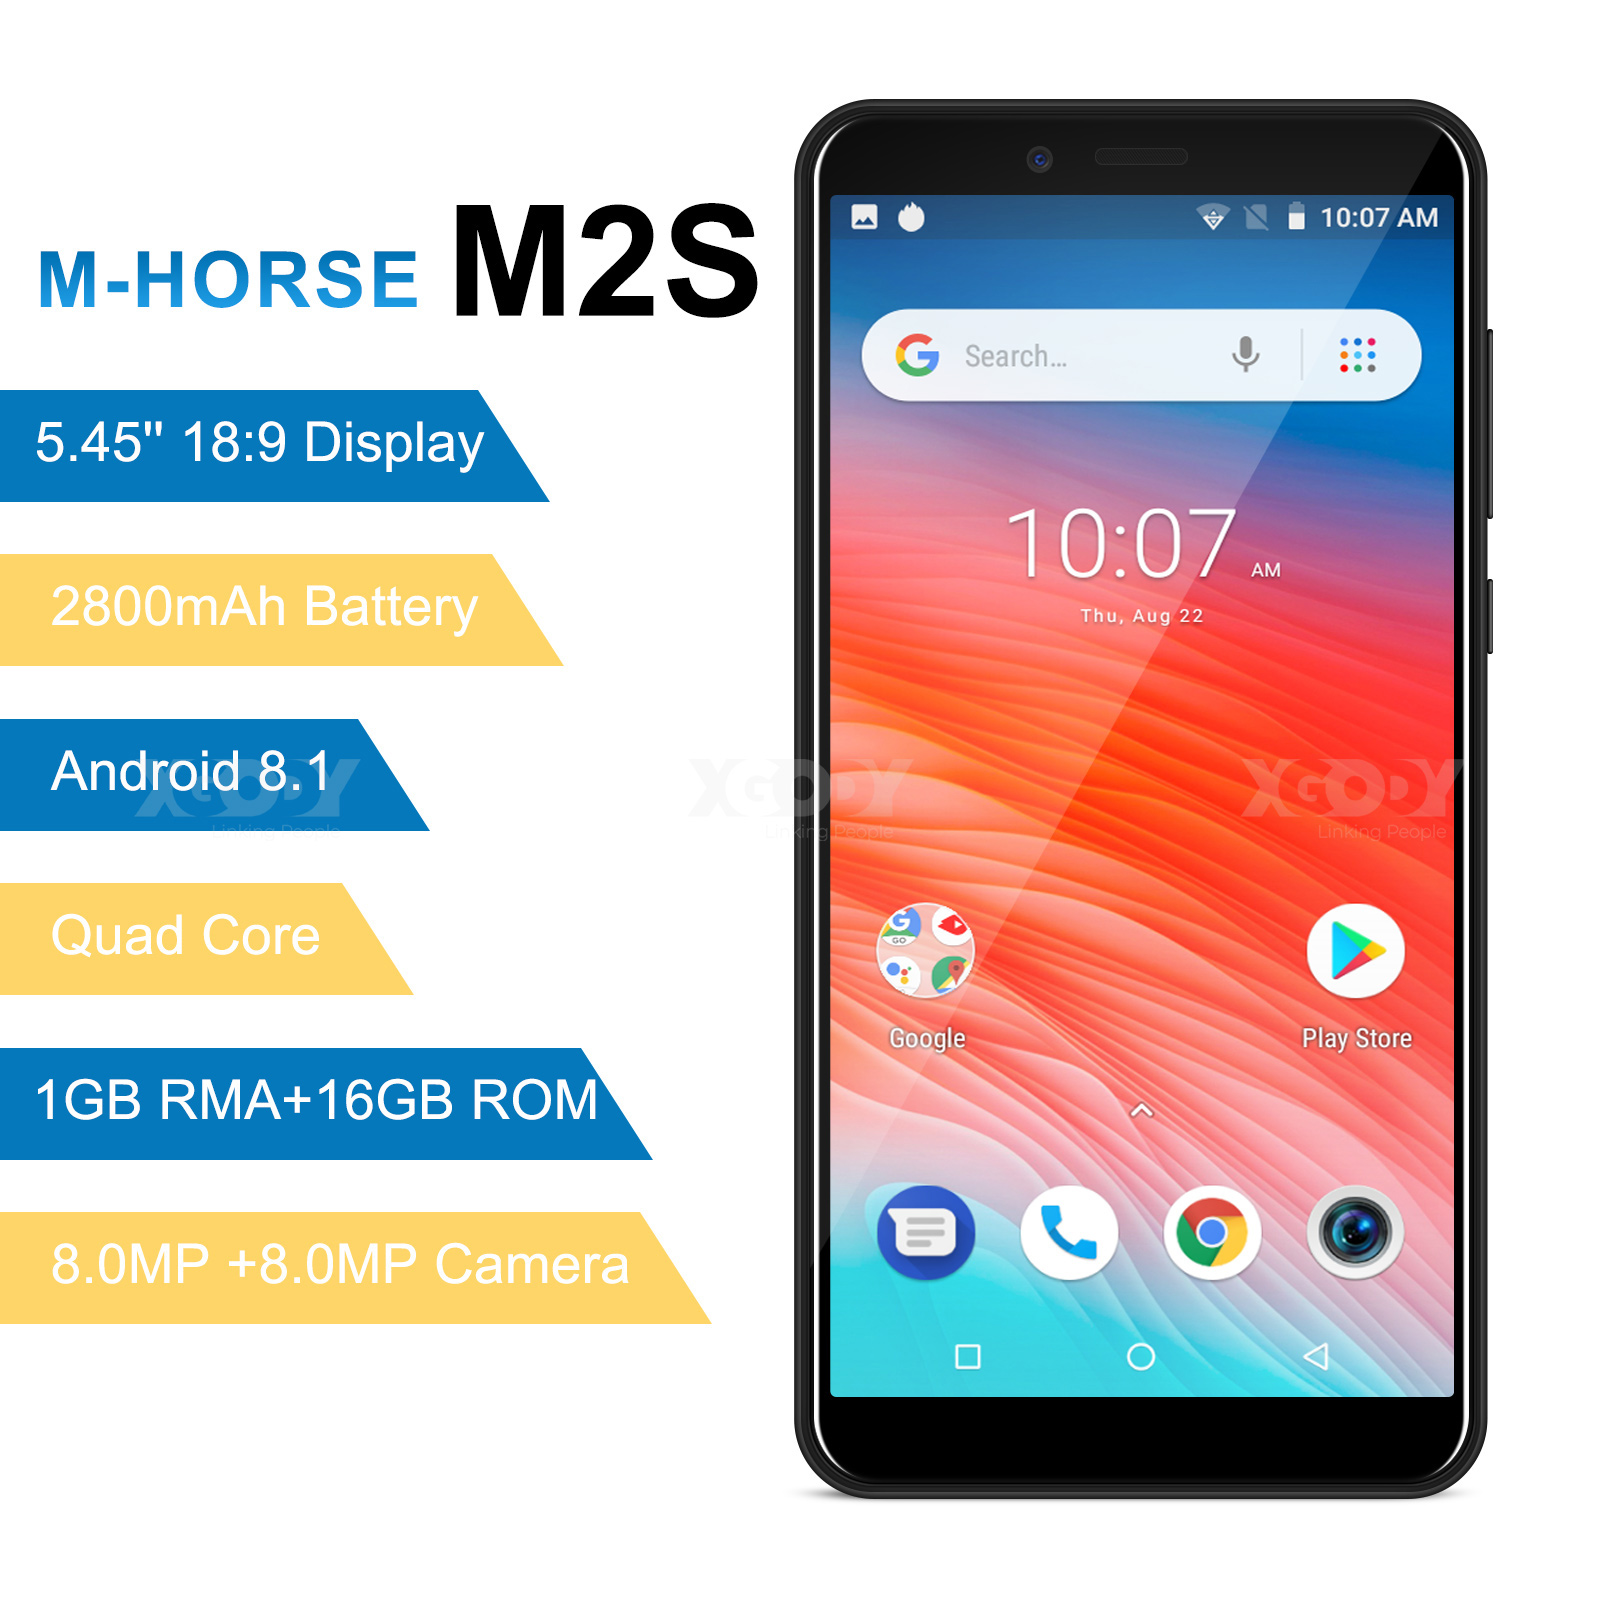 M-HORSE M2S Smartphone Android 8.1 2800mAh Cellphone 1GB+16GB Quad Core 5.45